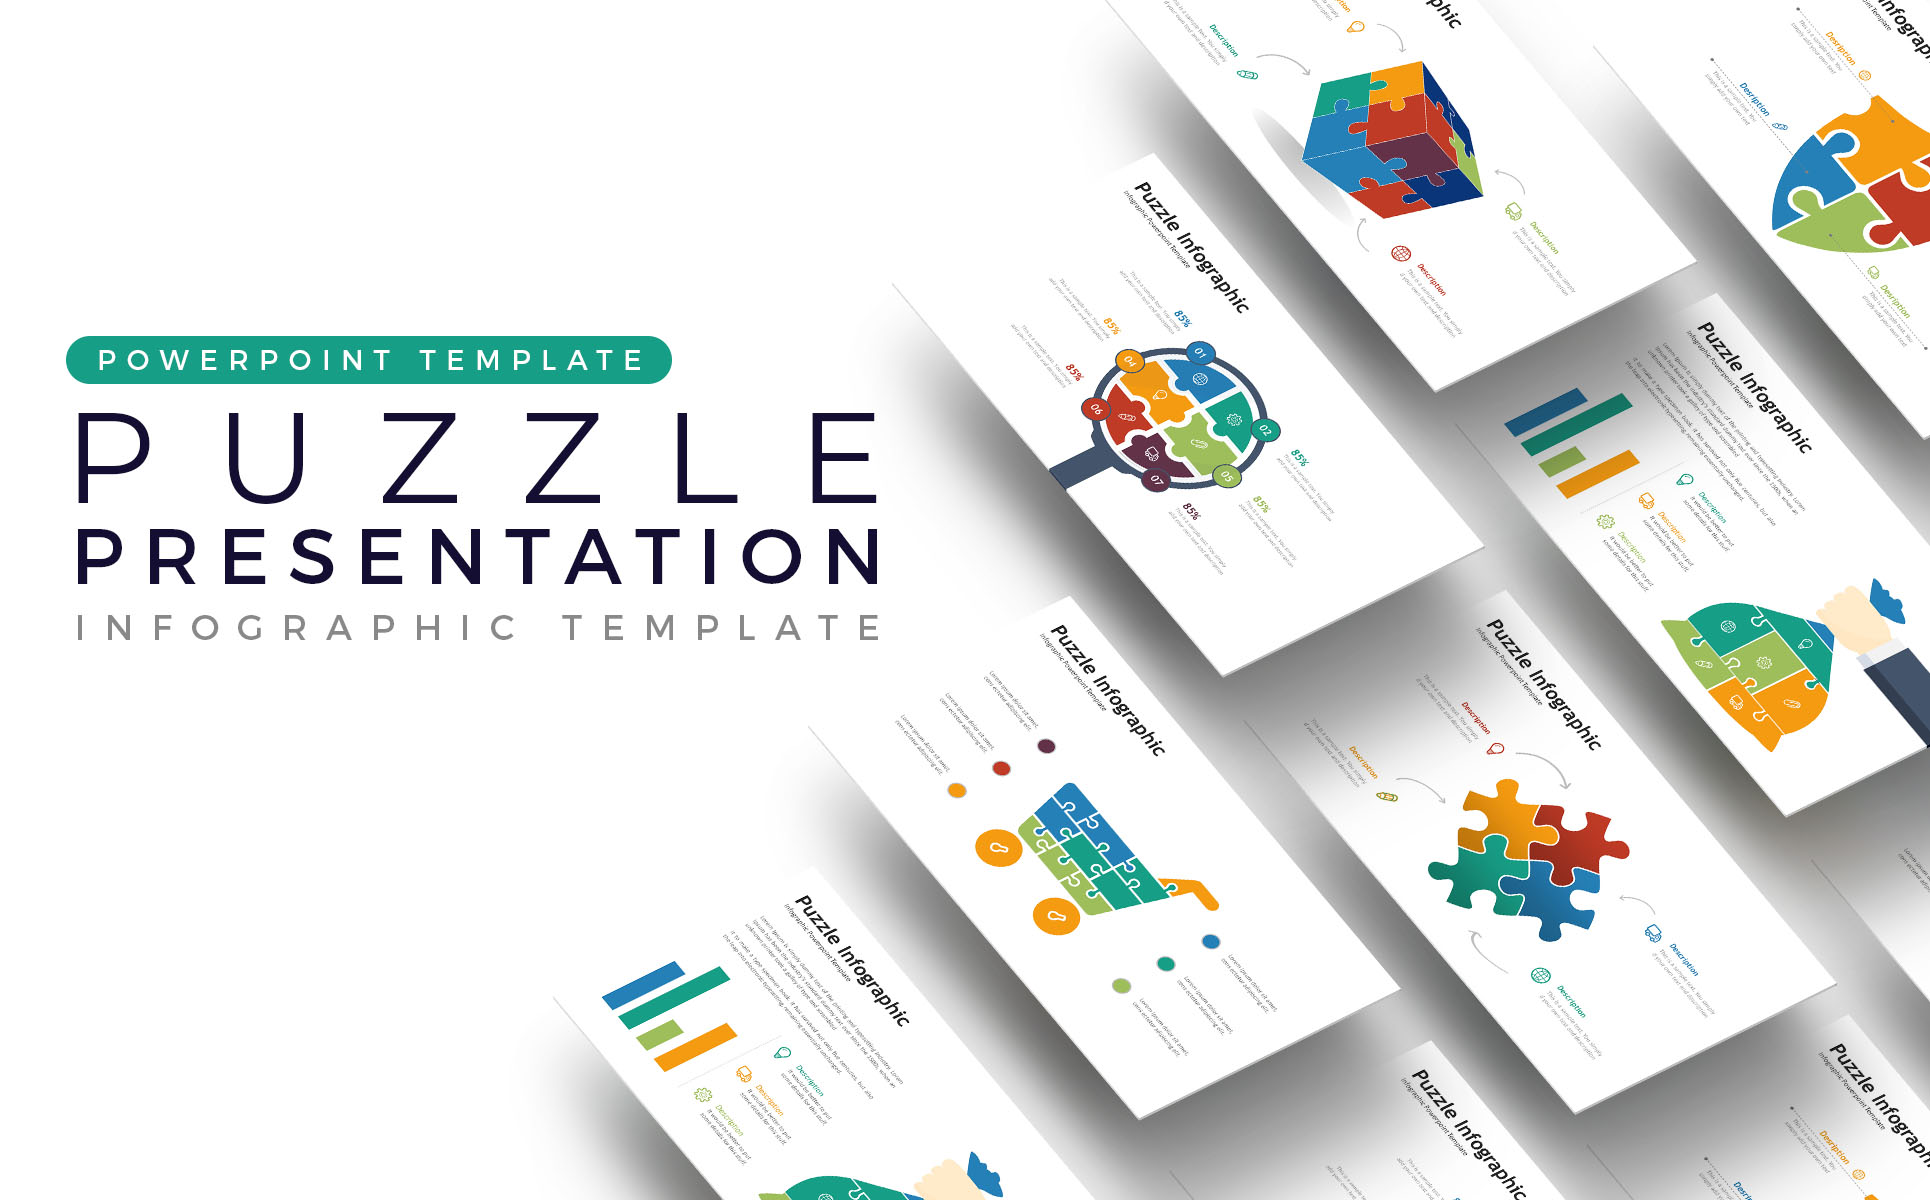 Puzzle Presentation - Infographic PowerPoint Template